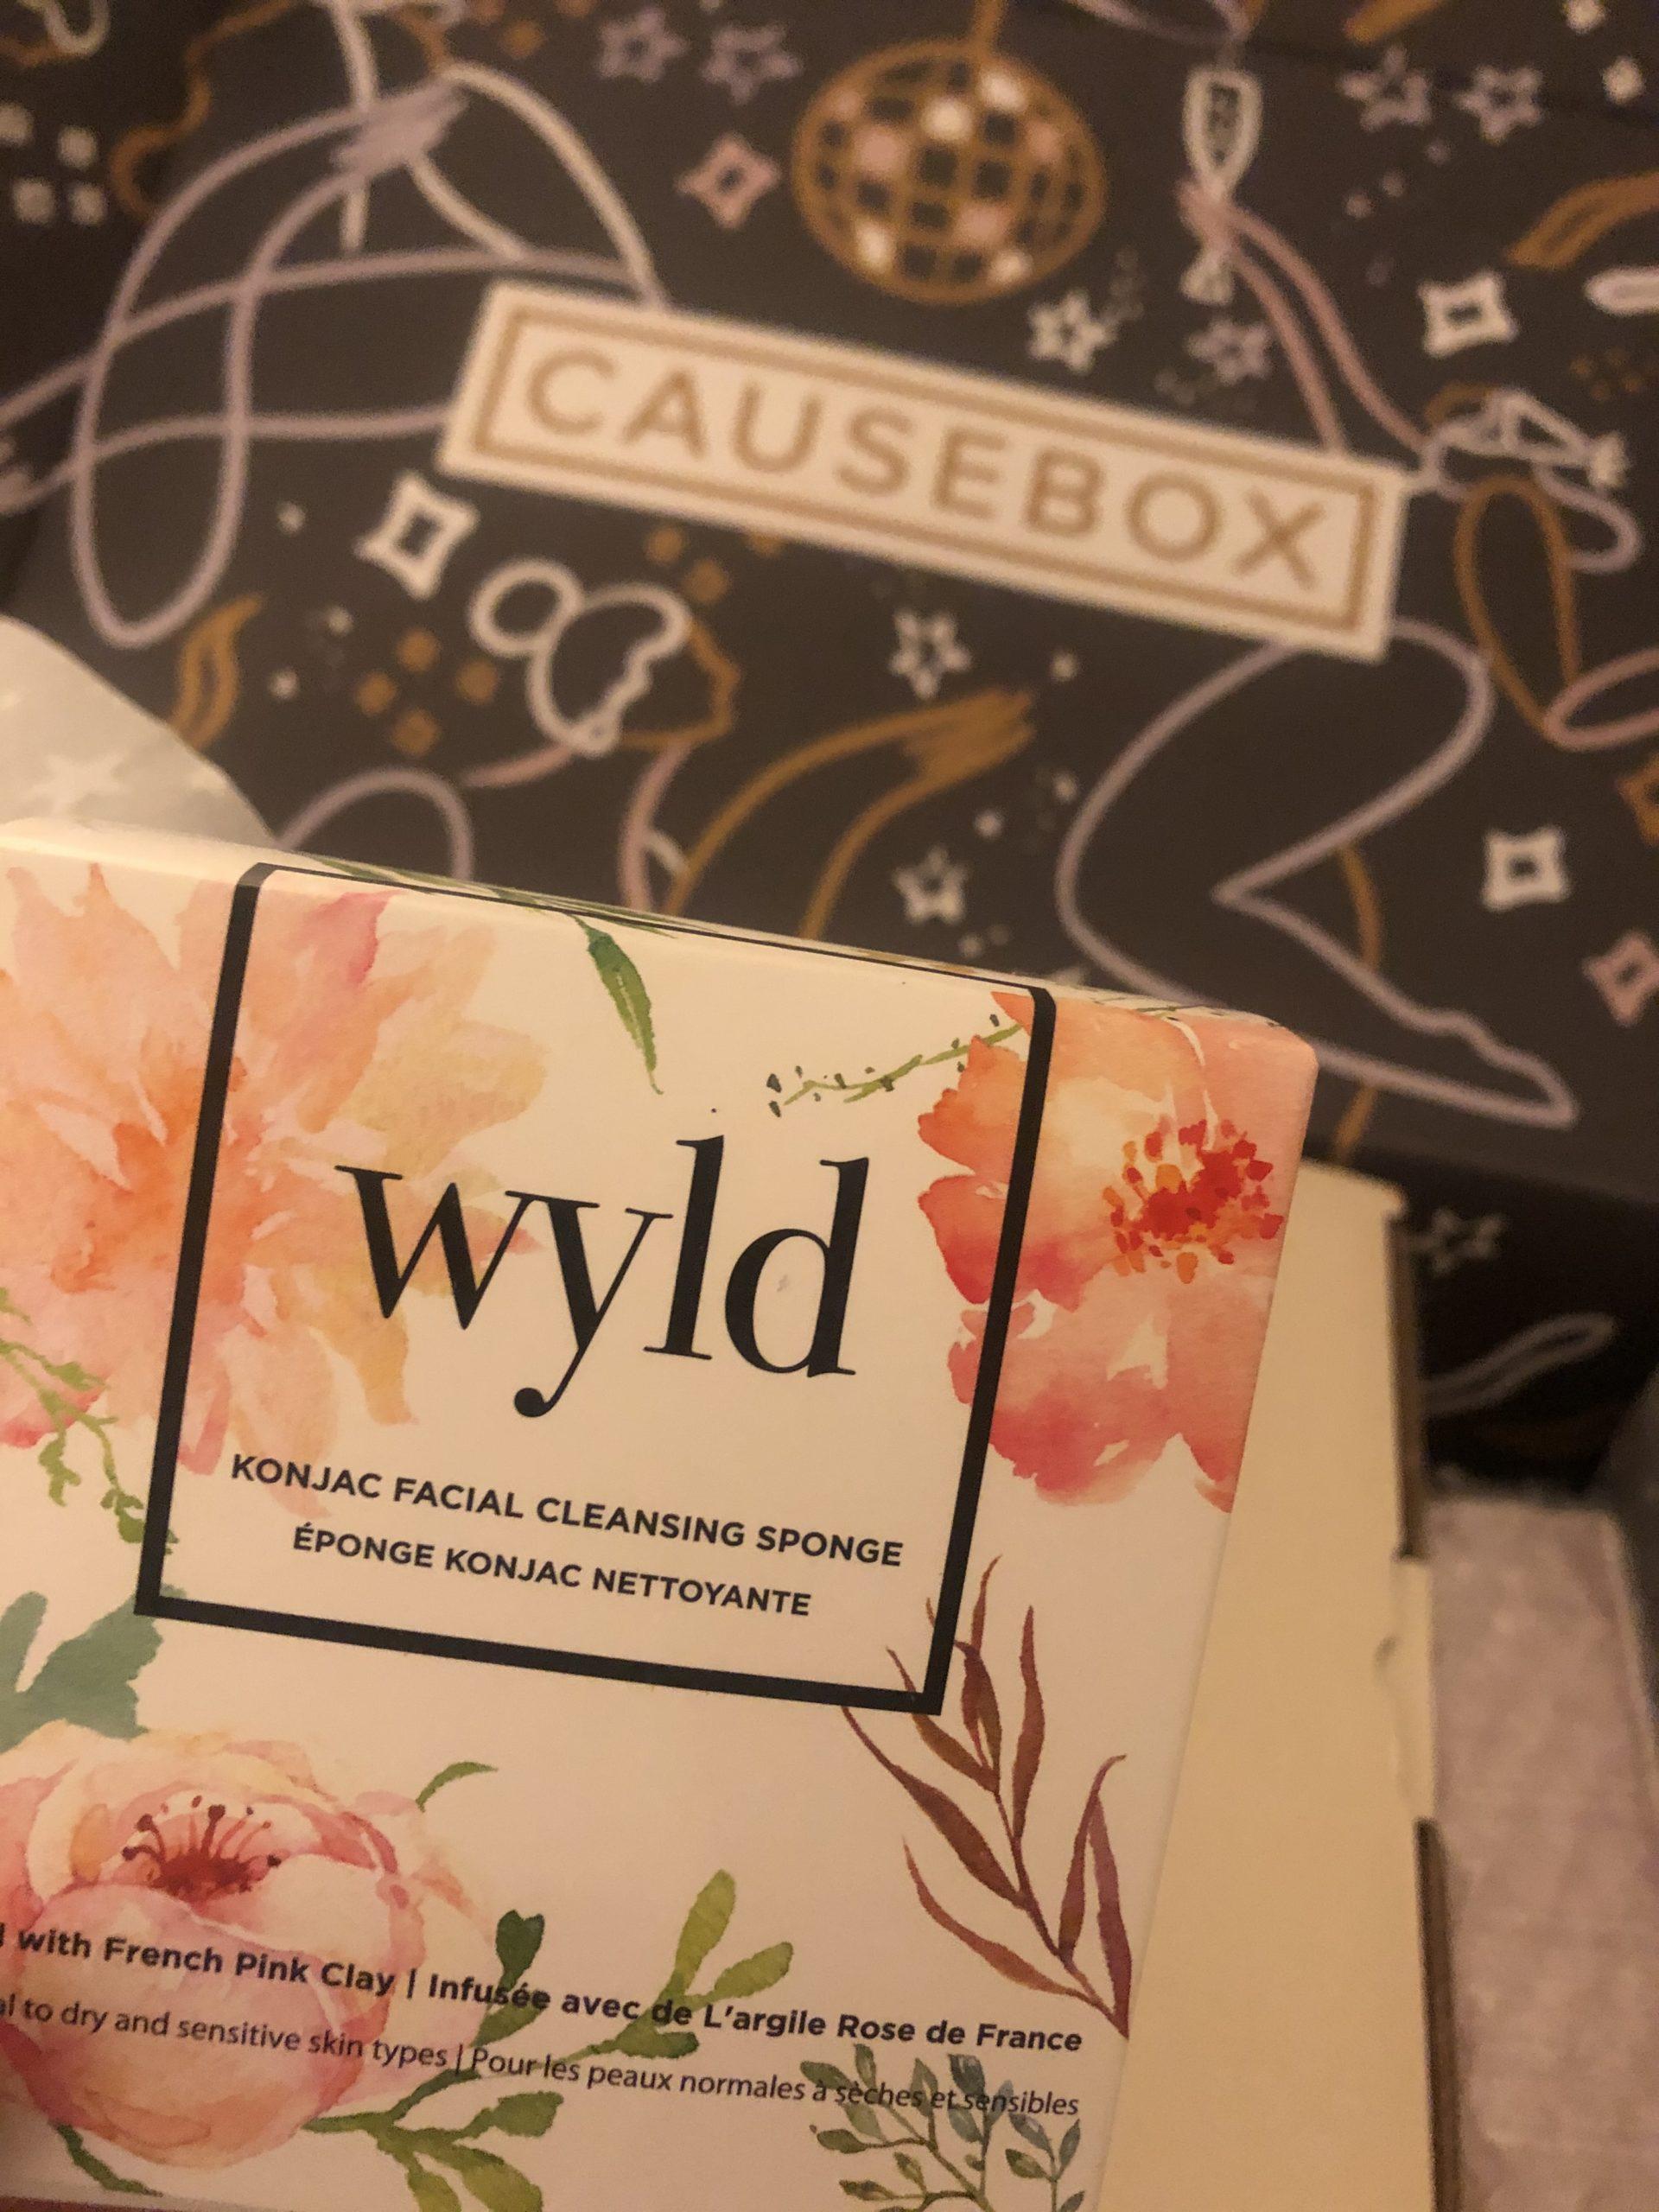 Causebox winter box - wyld